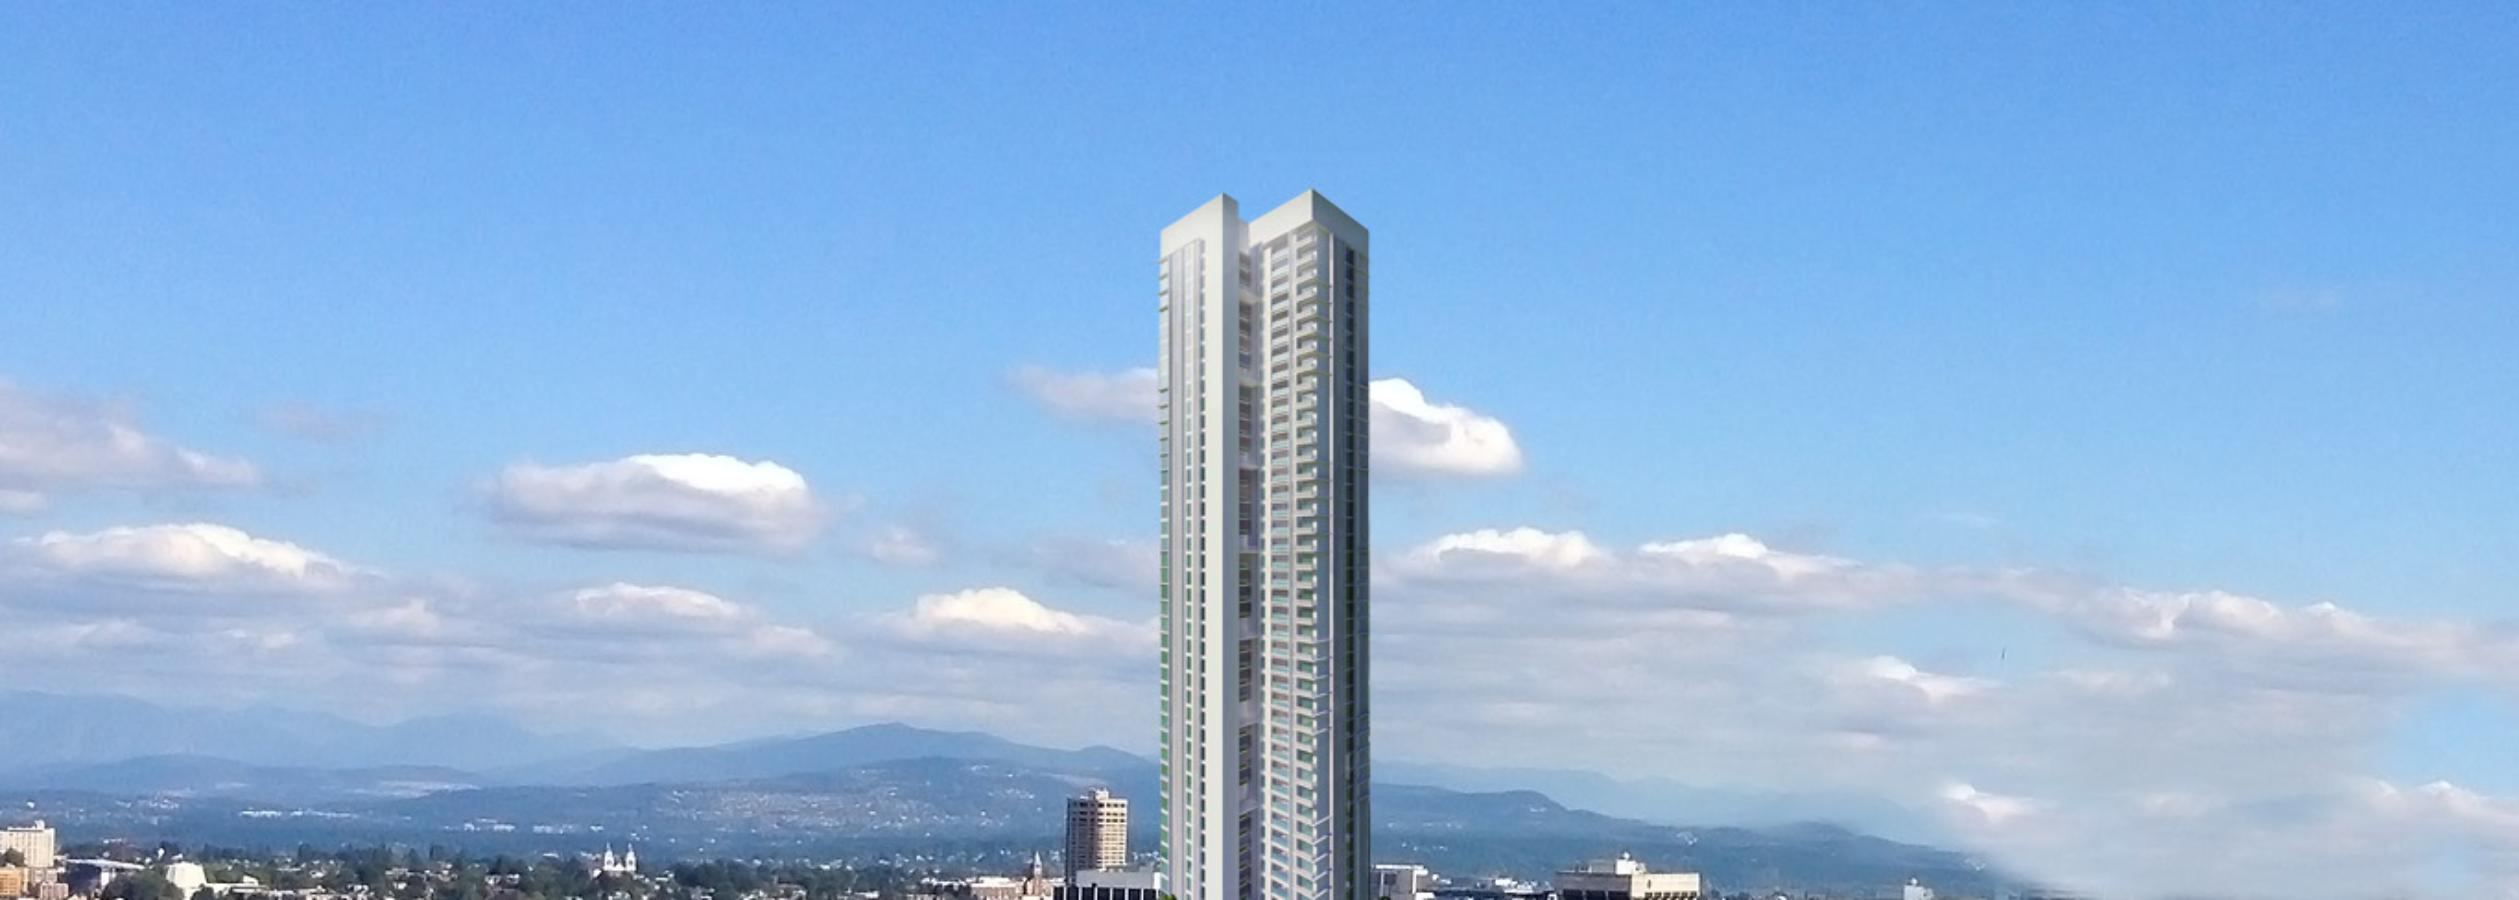 Lodha Bellezza Tower 1